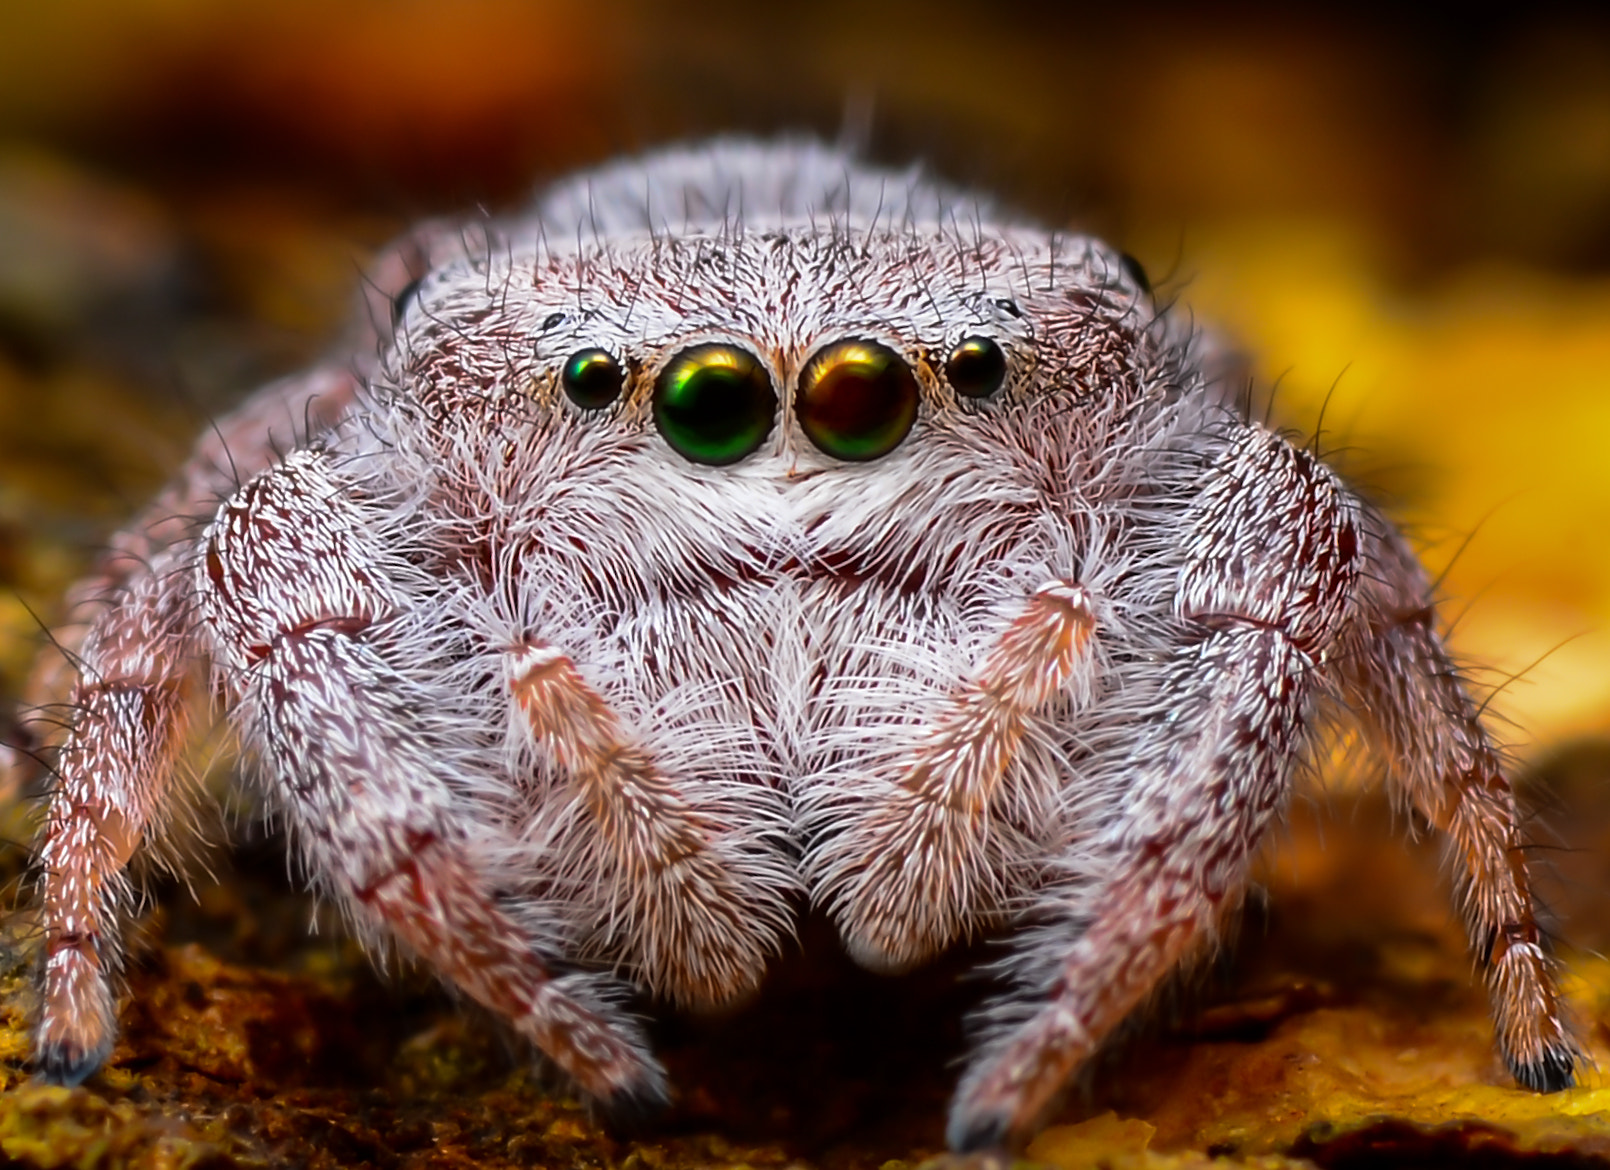 Photograph Jumper Spider by Bede Poukin on 500px